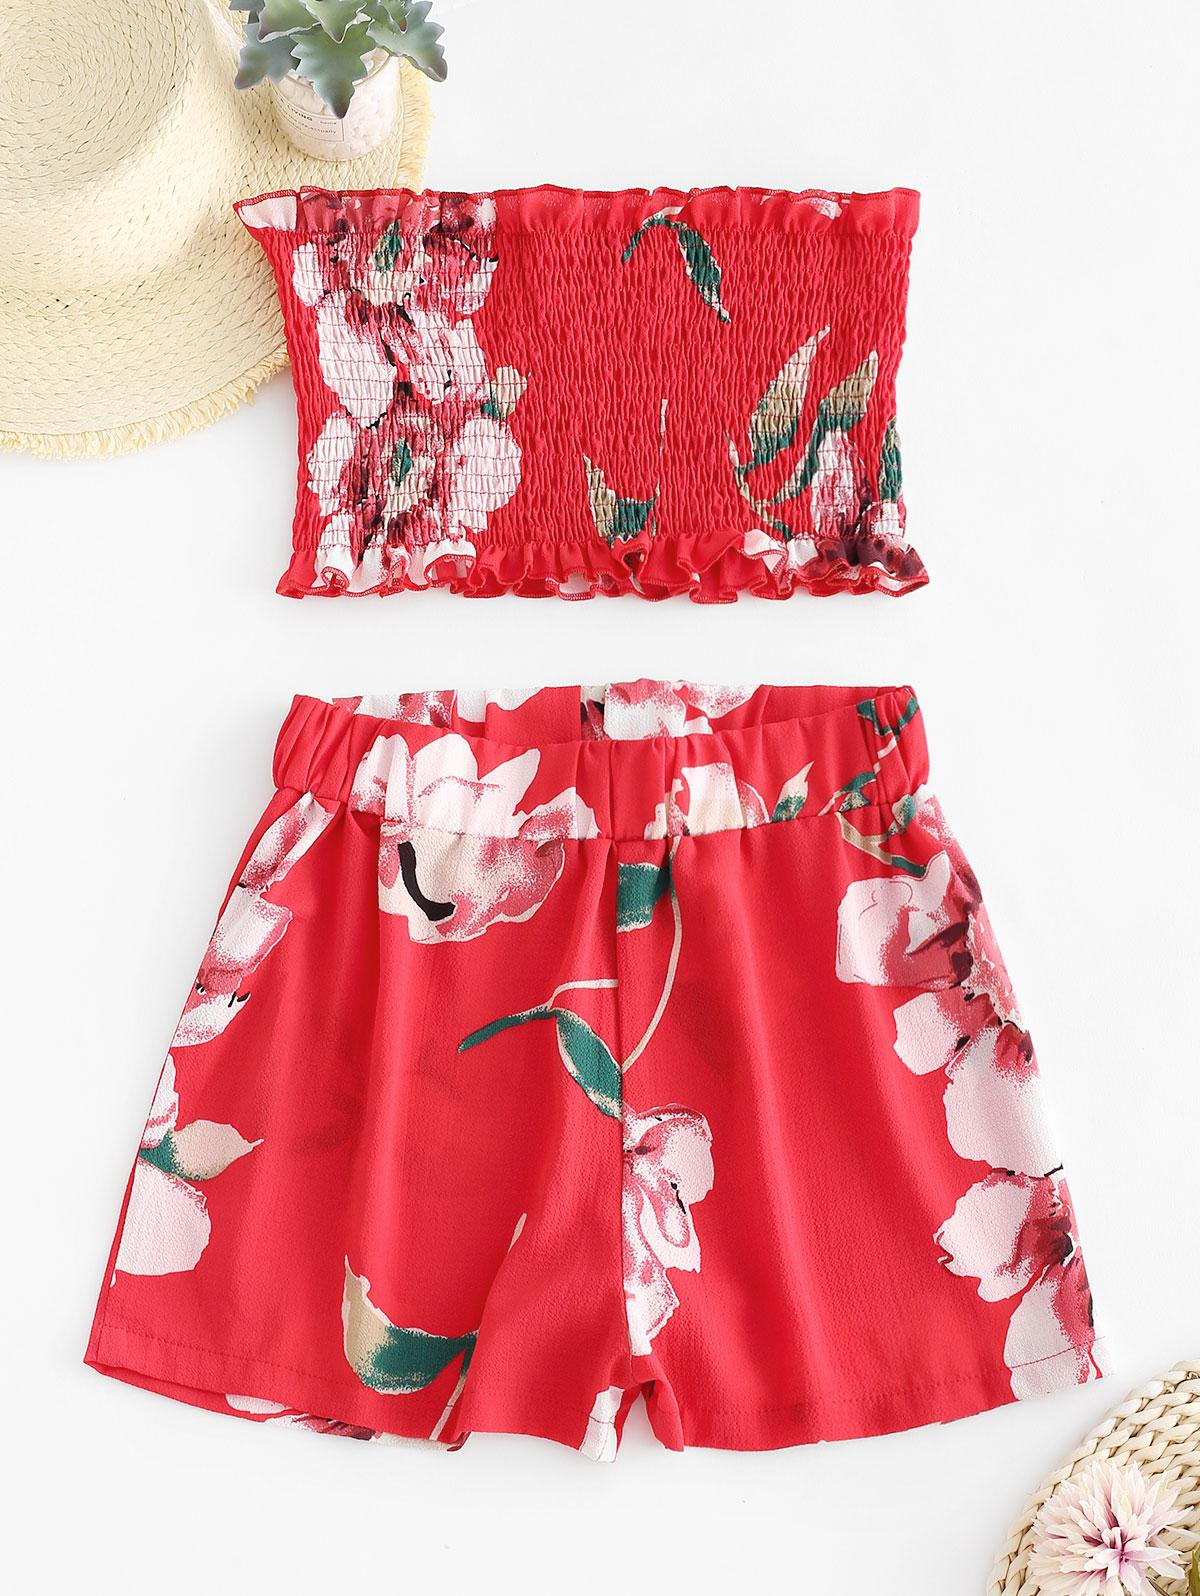 ZAFUL Smocked Floral Bandeau Top And Shorts Set, Ruby red